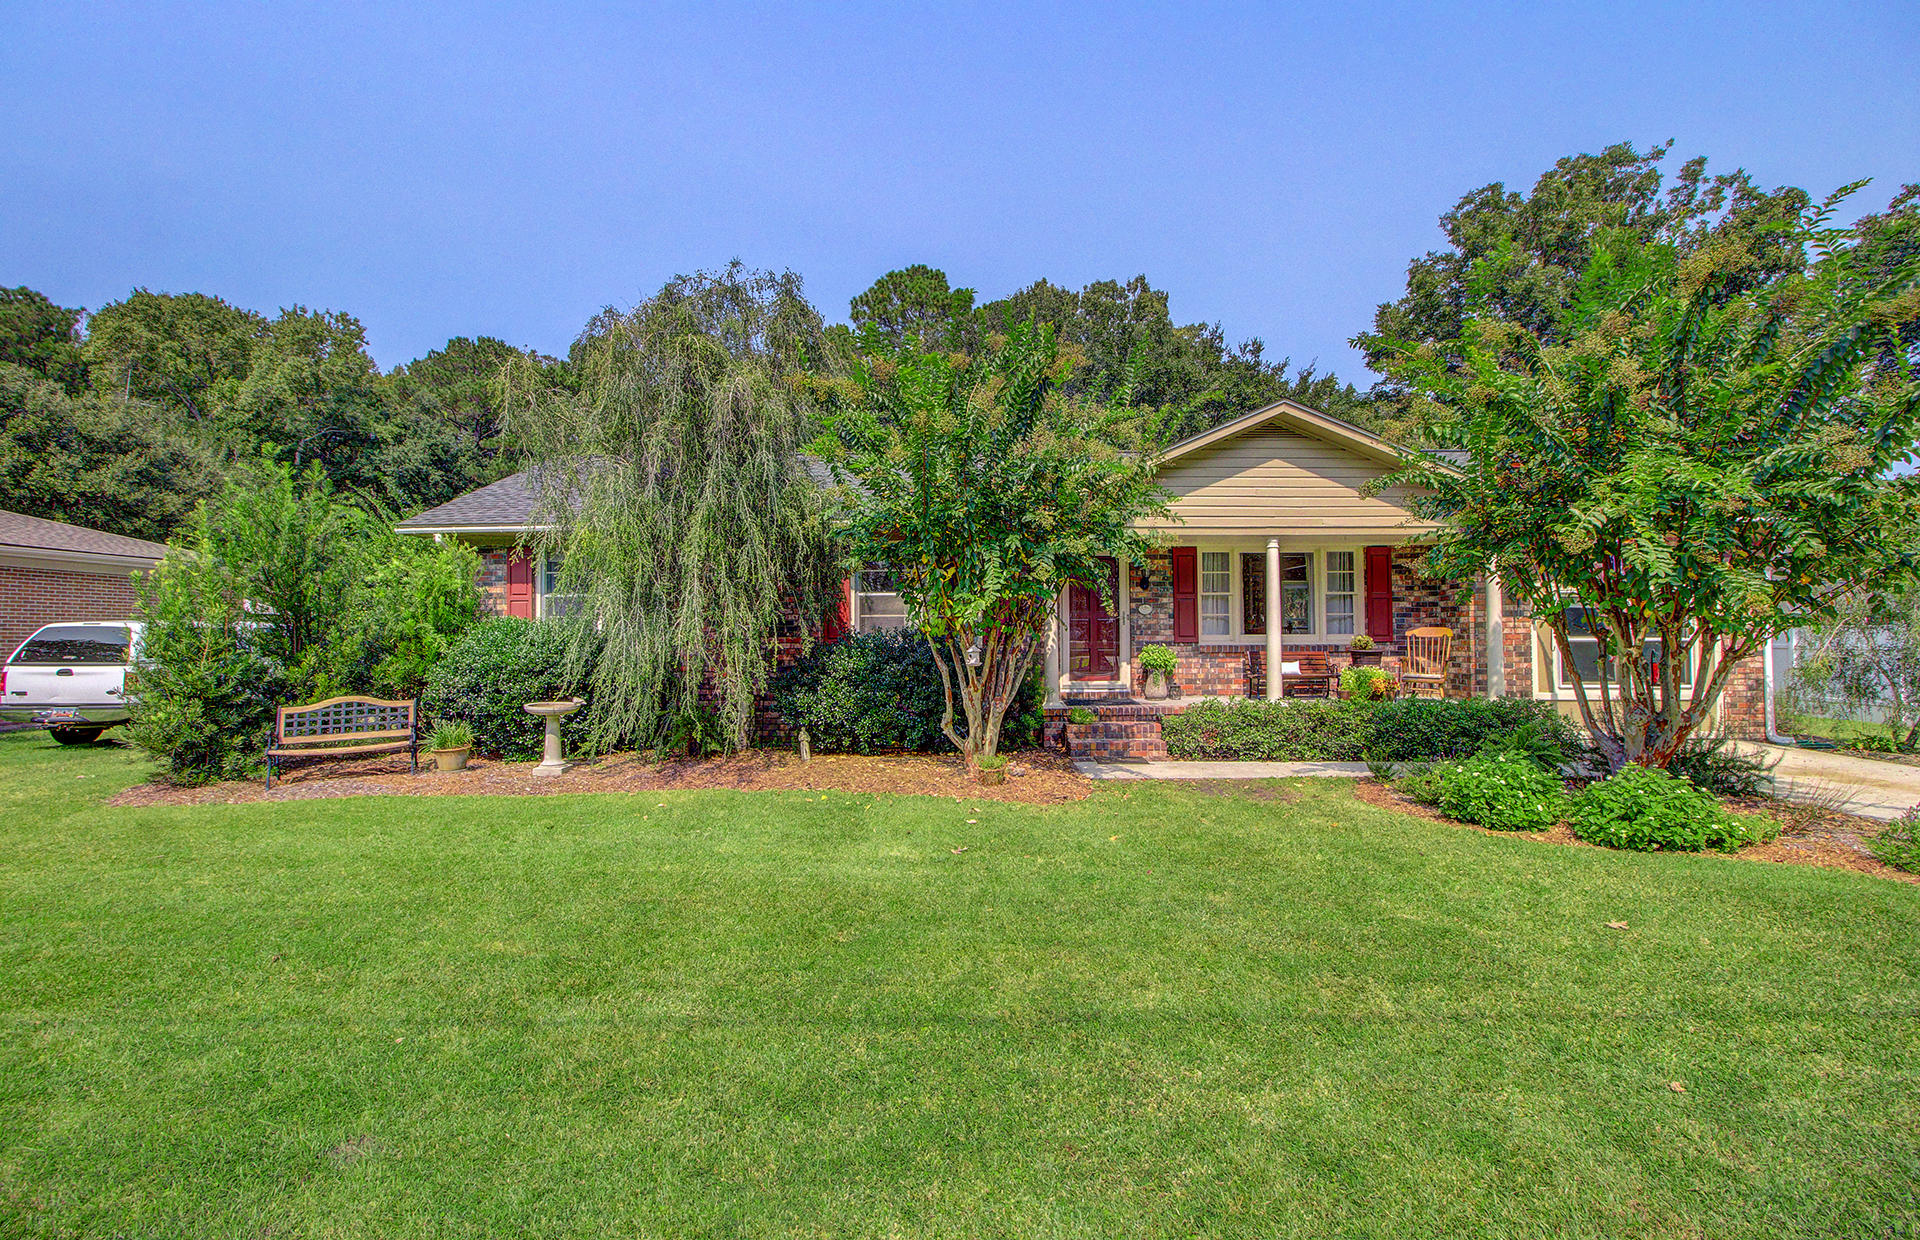 Sunset Shores Homes For Sale - 3646 Moonglow, Johns Island, SC - 6